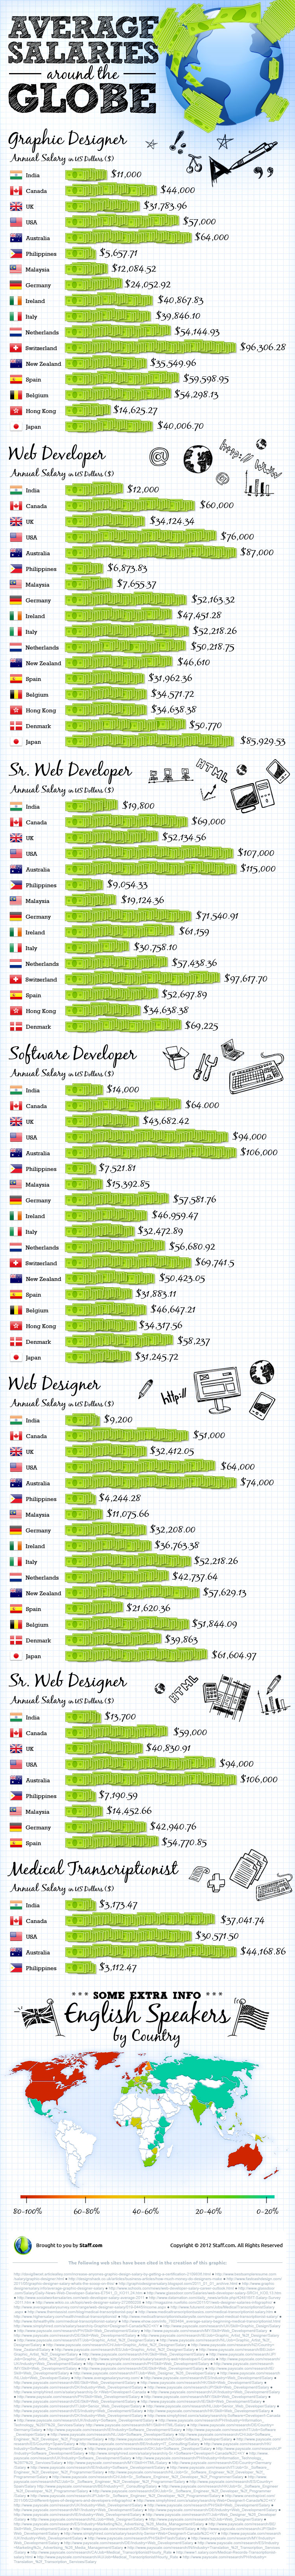 Average Salaries Around the World